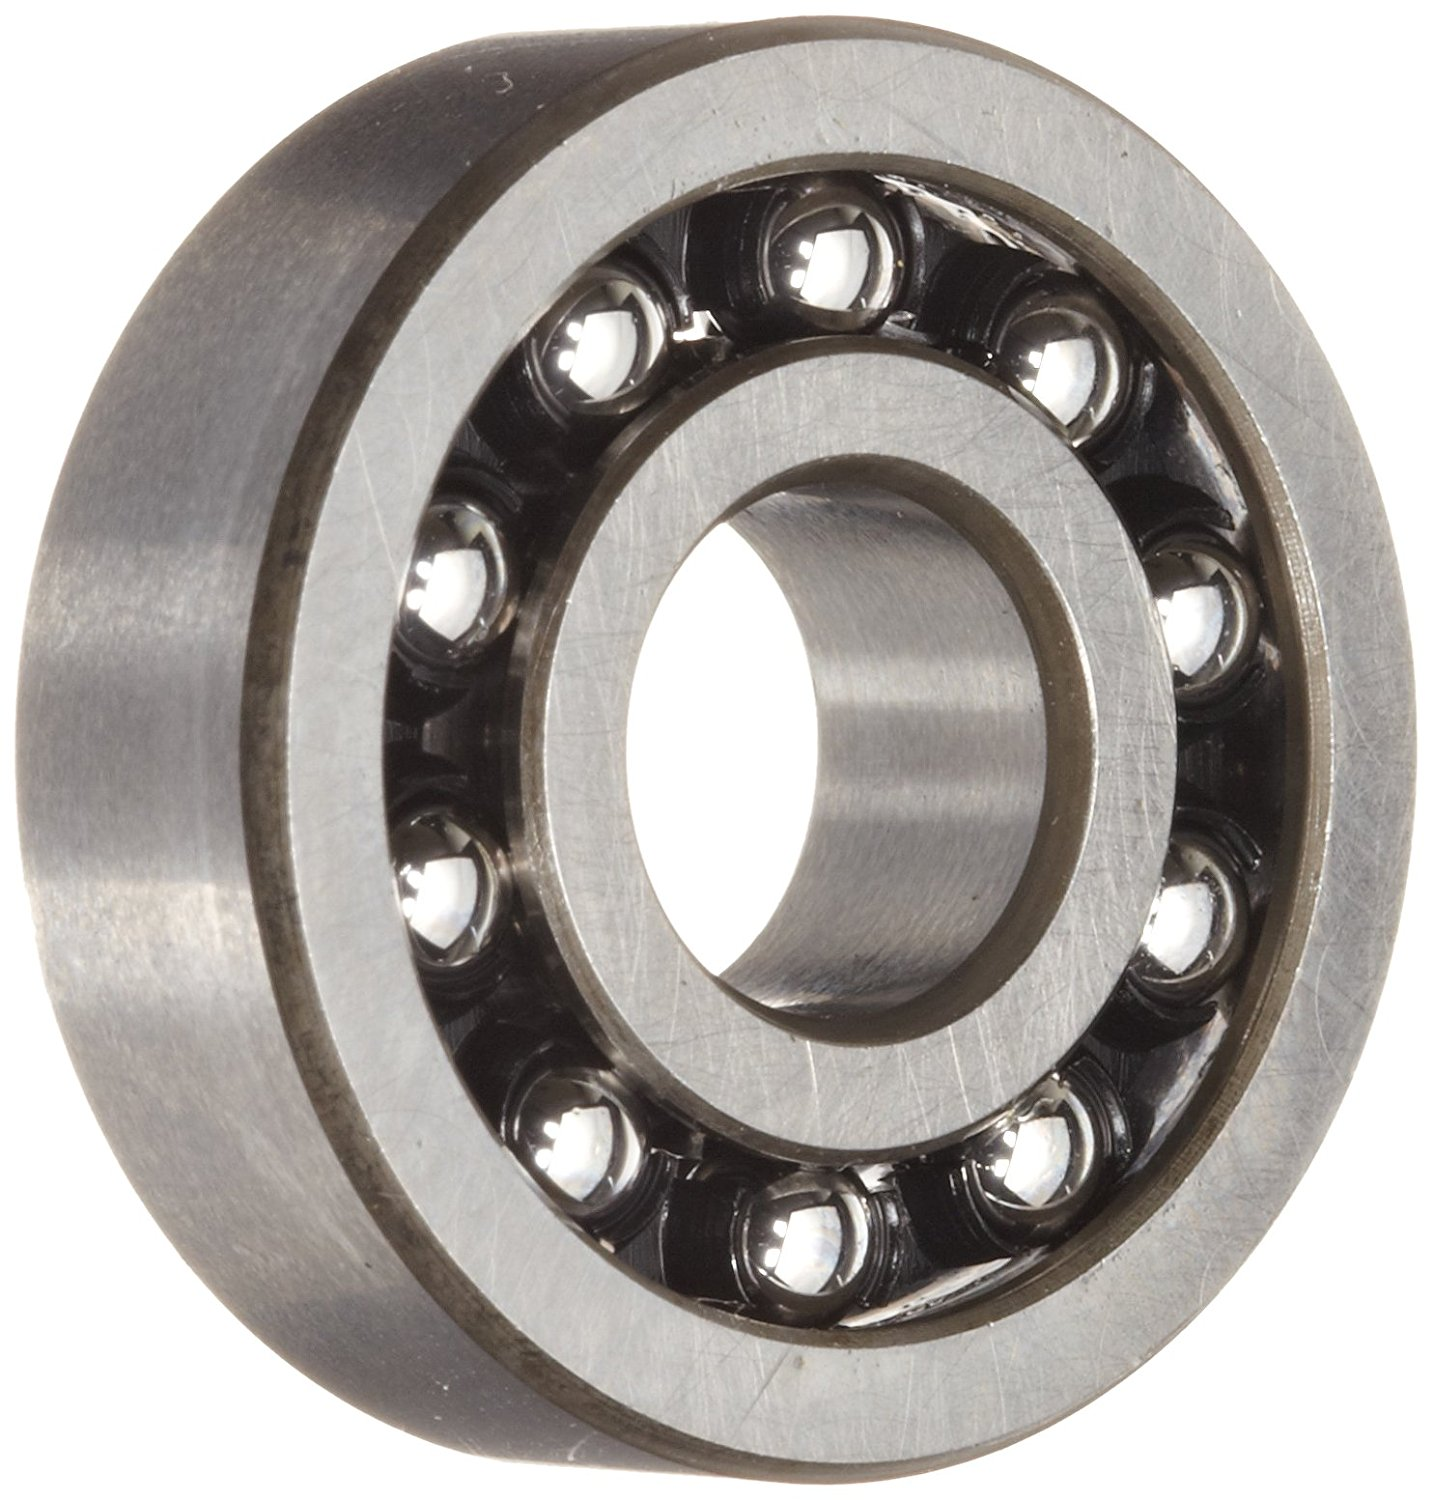 FAG 1209.TV Double Row Self-Aligning Ball Bearings (Inside Dia 45 mm,Outside Dia 85 mm,Width 19mm)